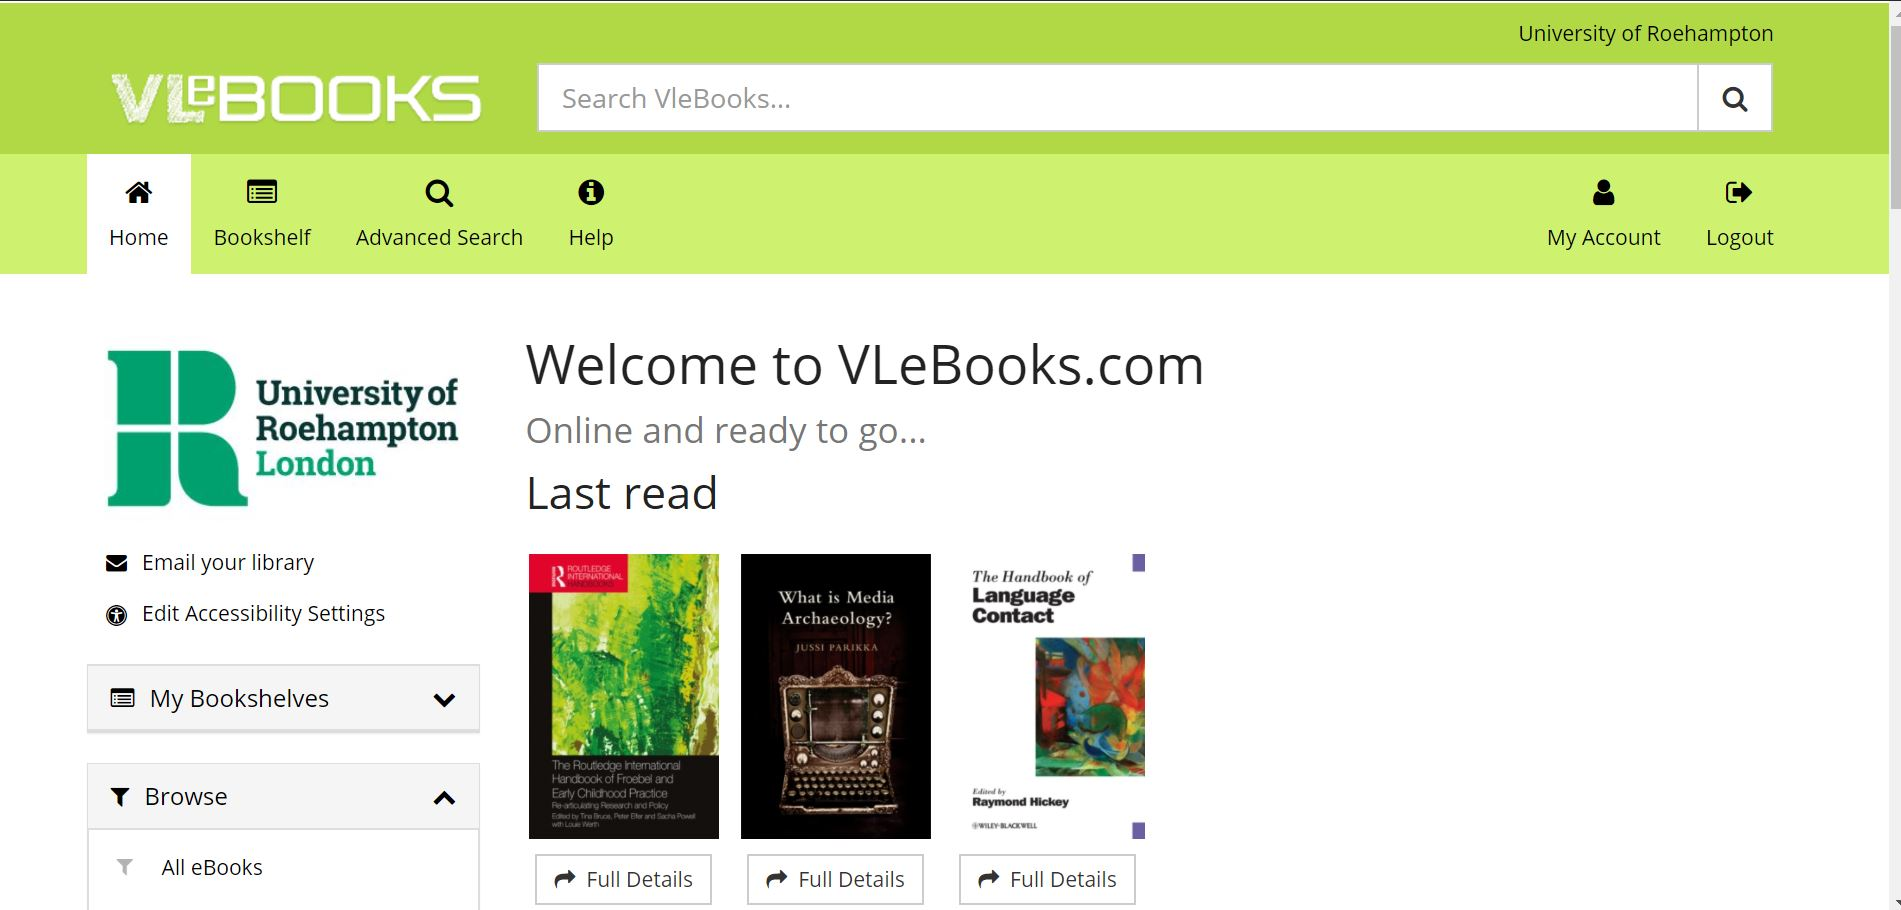 Use the title, author or ISBN to find and read your selected eBooks